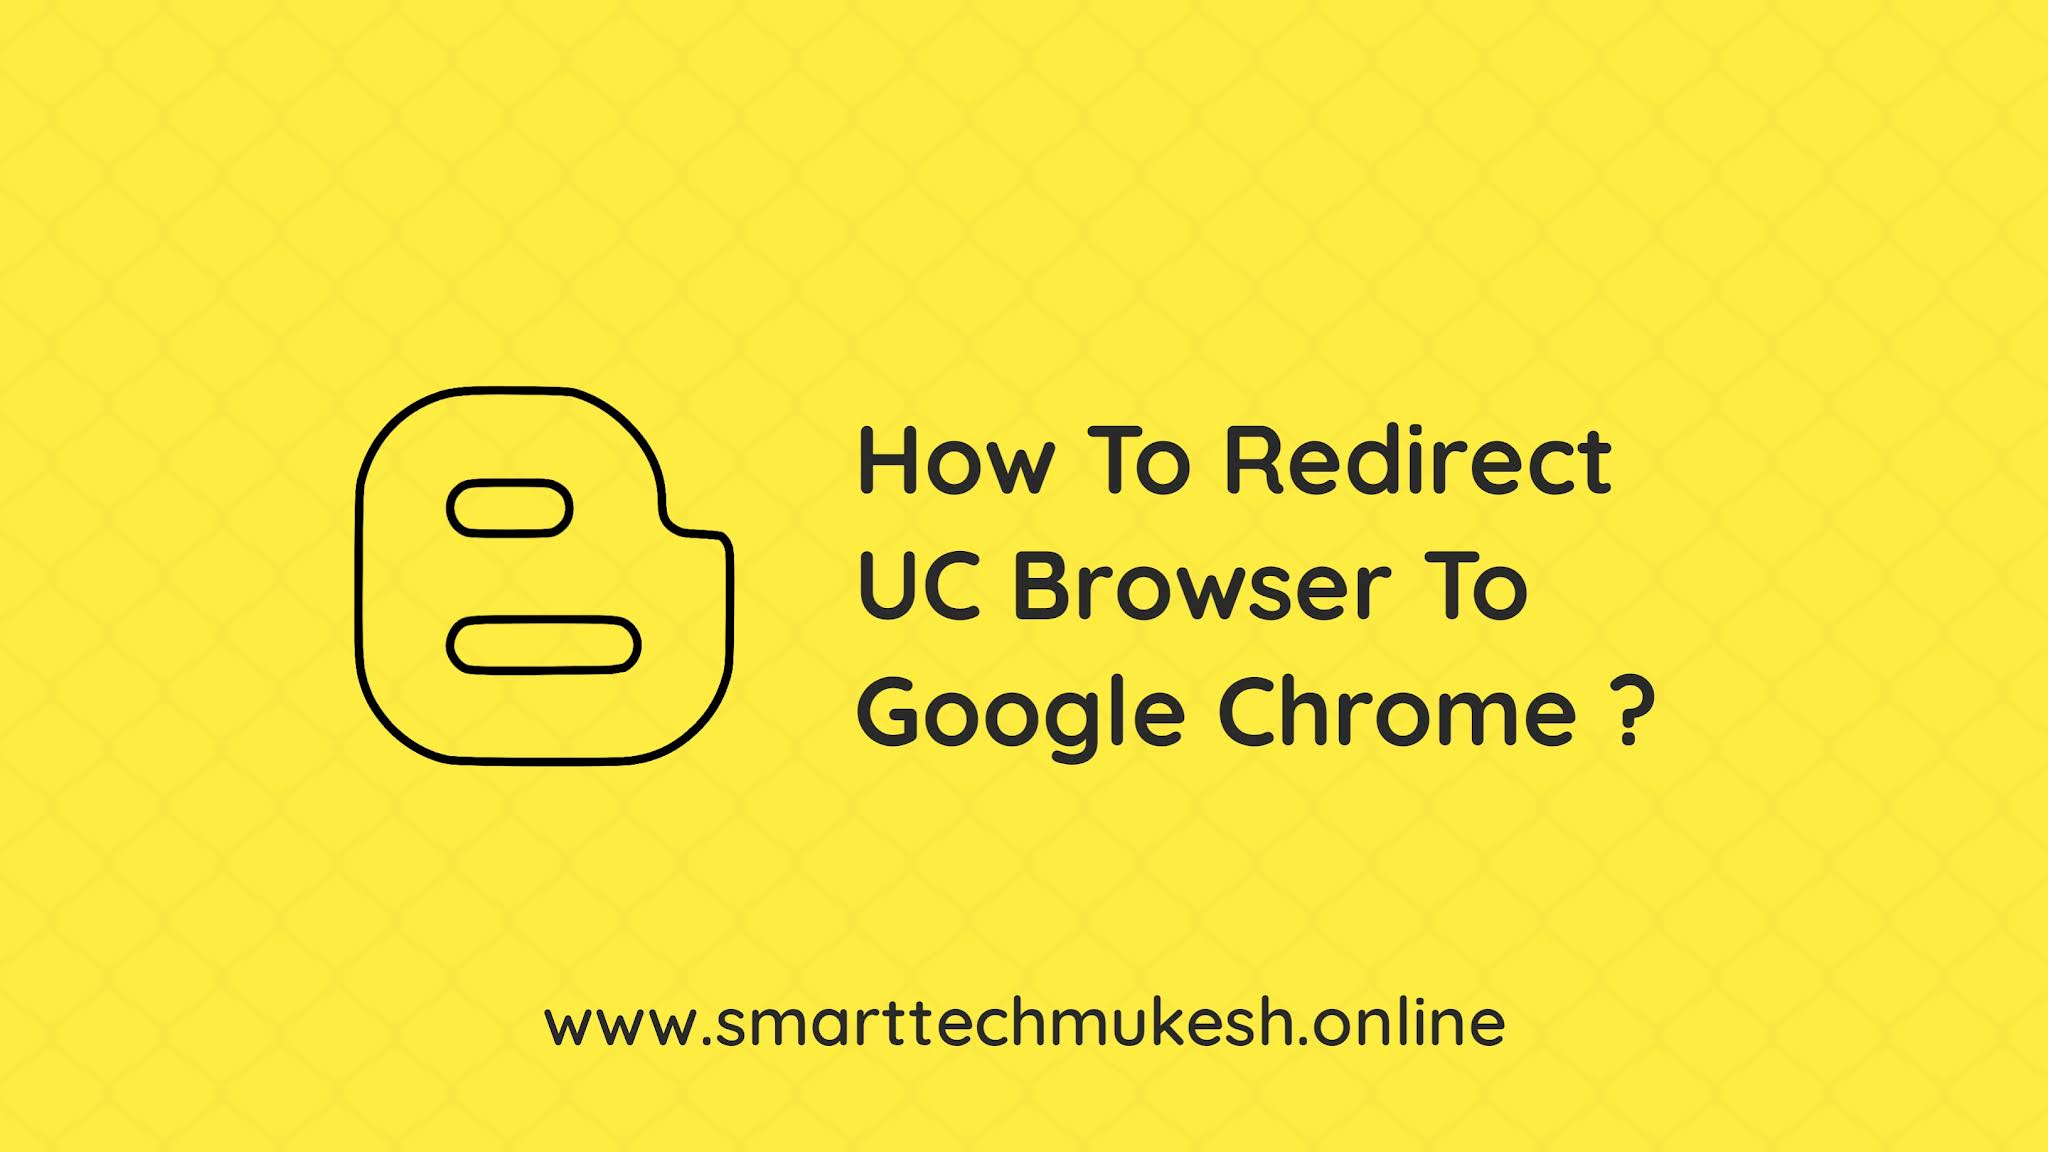 How To Redirect UC Browser To Google Chrome To Redirect UC Browser To Google Chrome